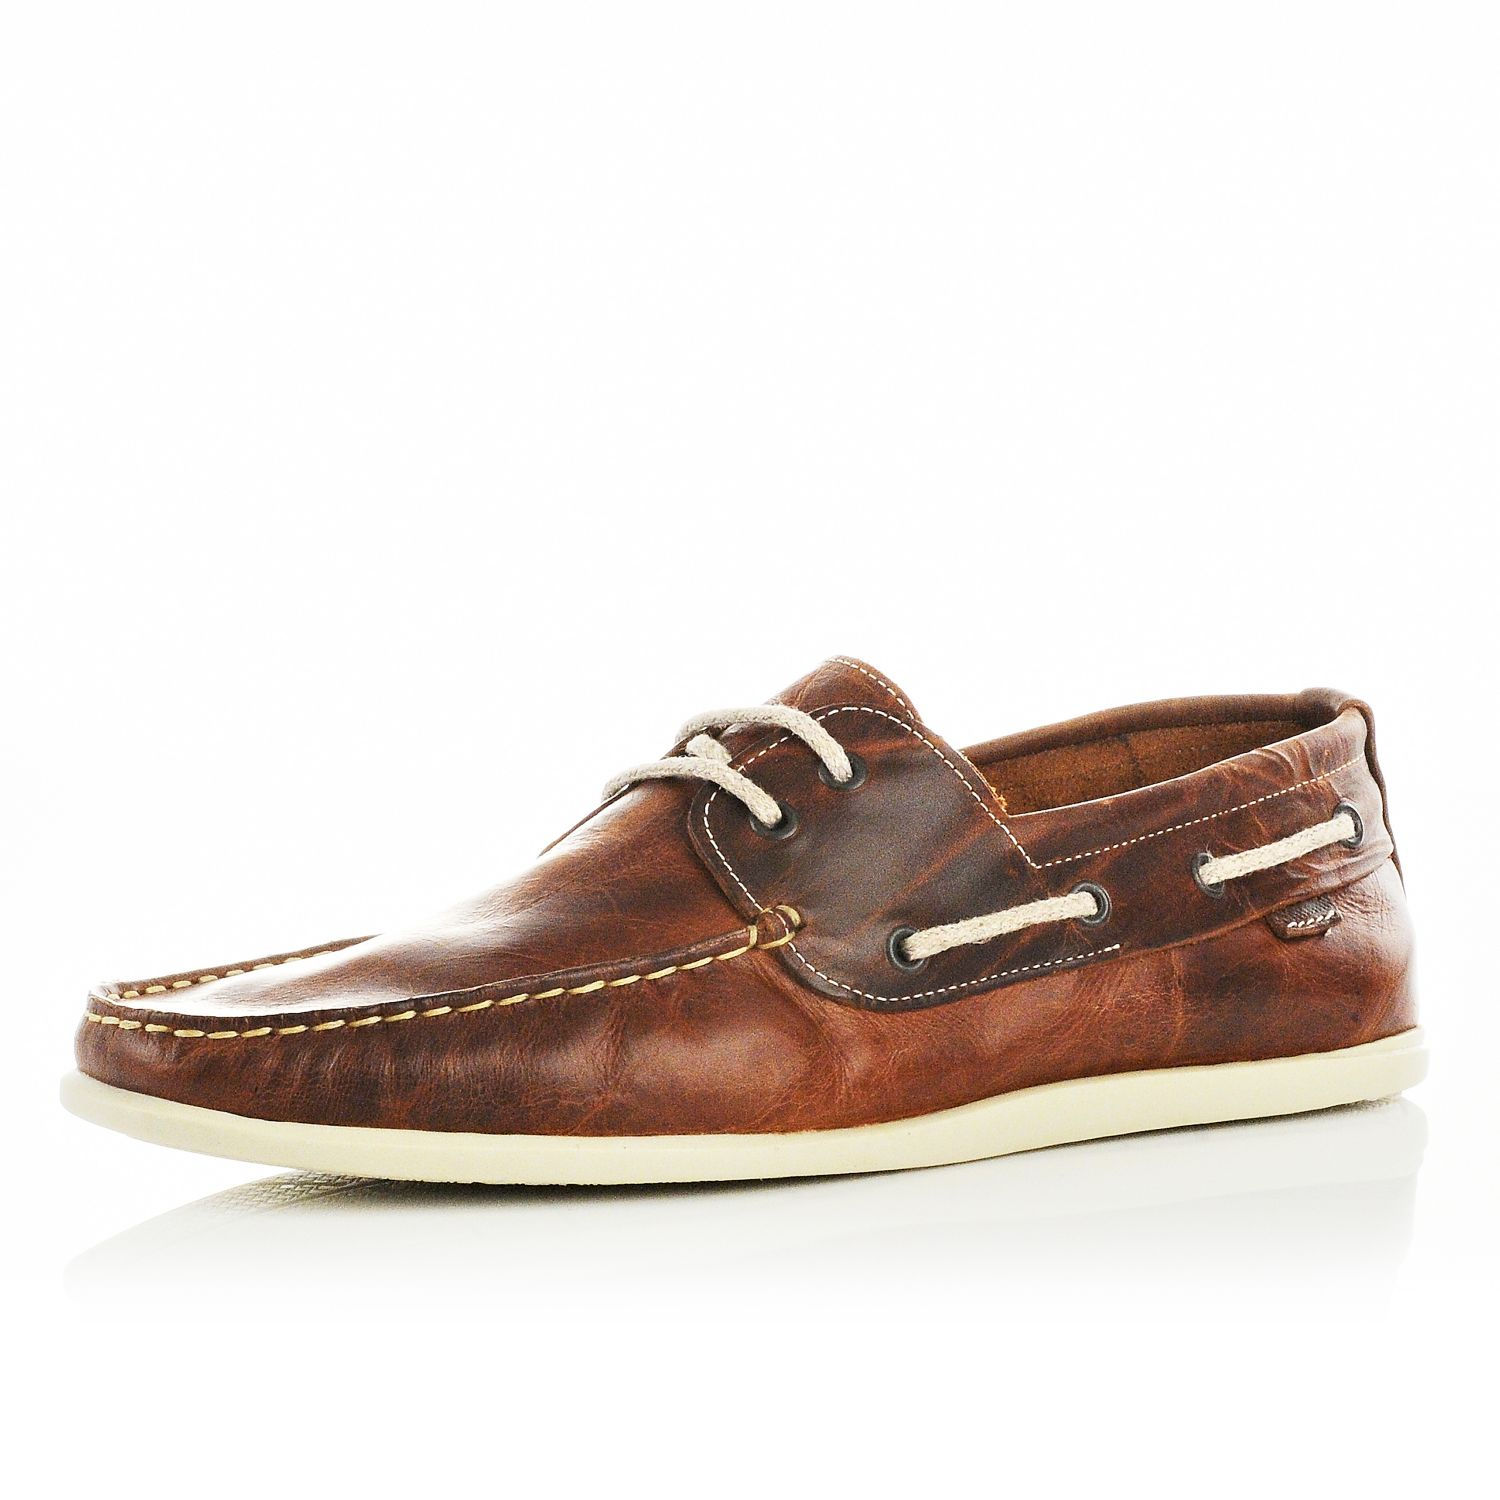 buy online with paypal 2014 newest for sale River Island Leather Boat Shoe In Tan excellent cheap online for nice MfMGSbZH